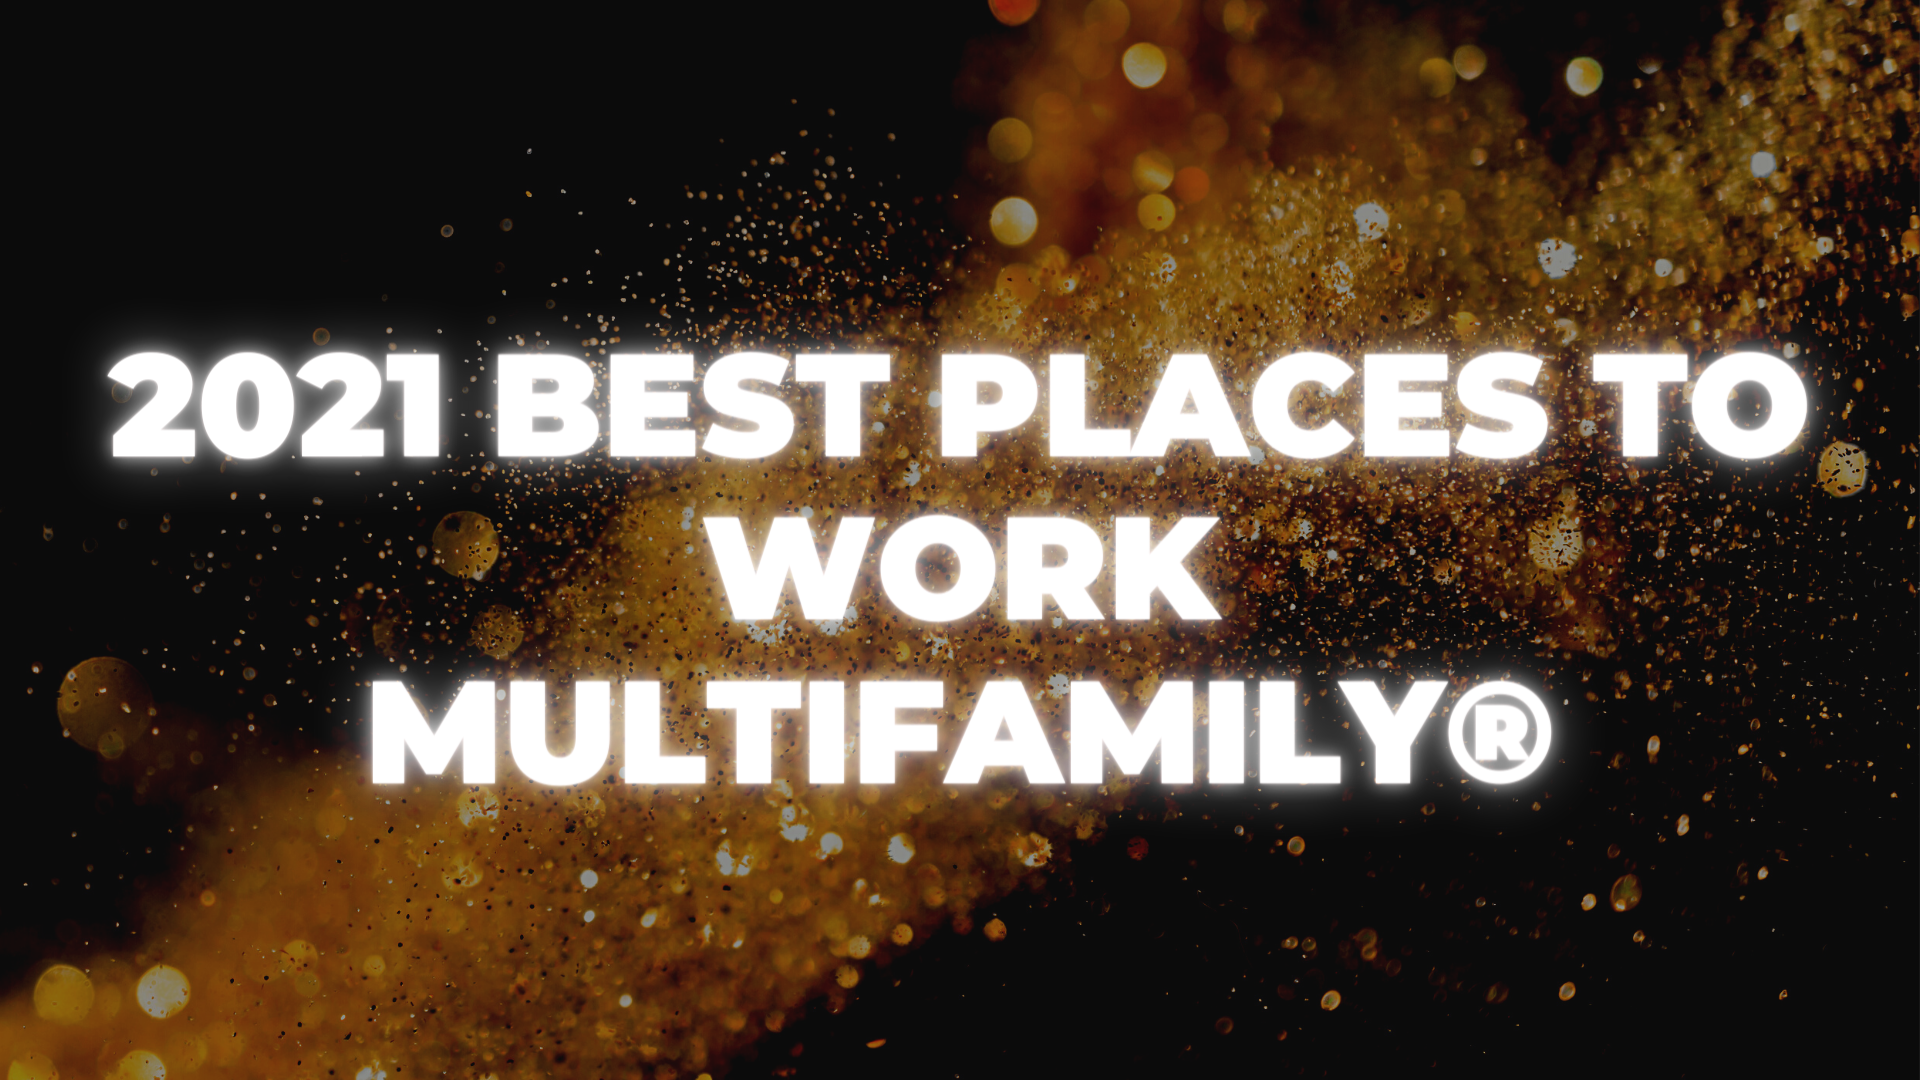 Best Places to Work Multifamily® Awards goes virtual